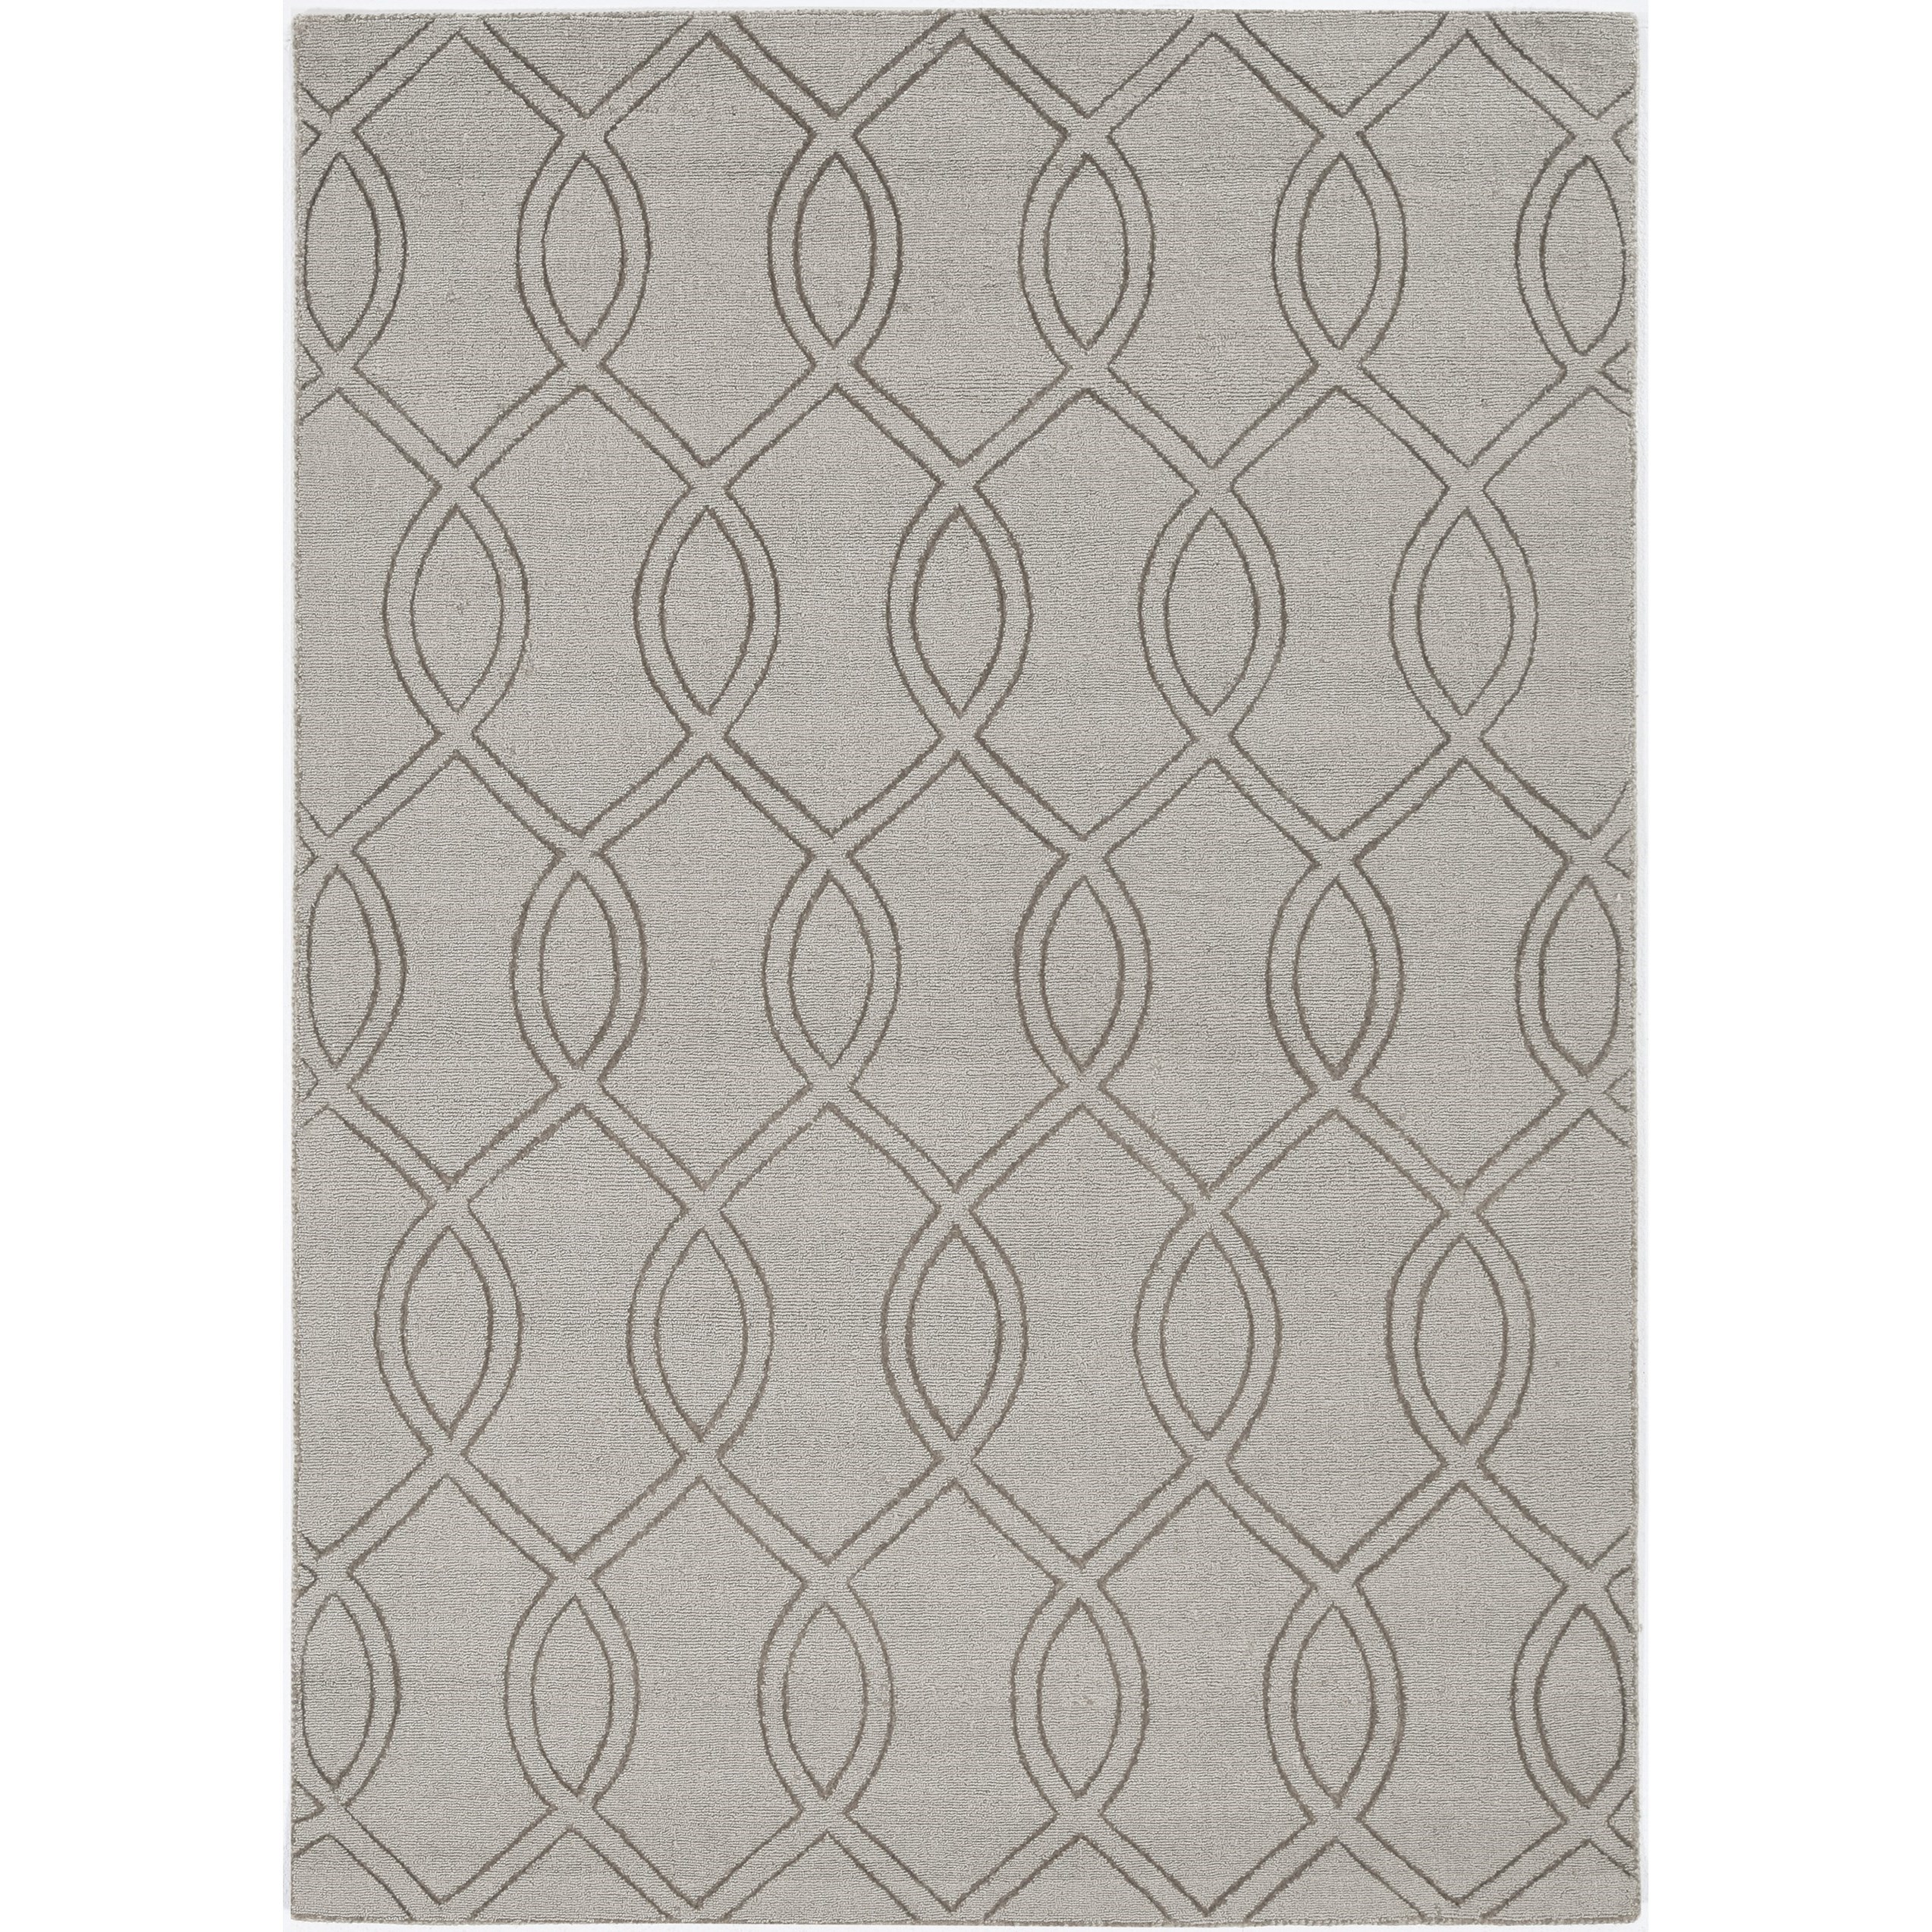 Avery 5' x 7' Taupe Ellison Rug by Kas at Zak's Home